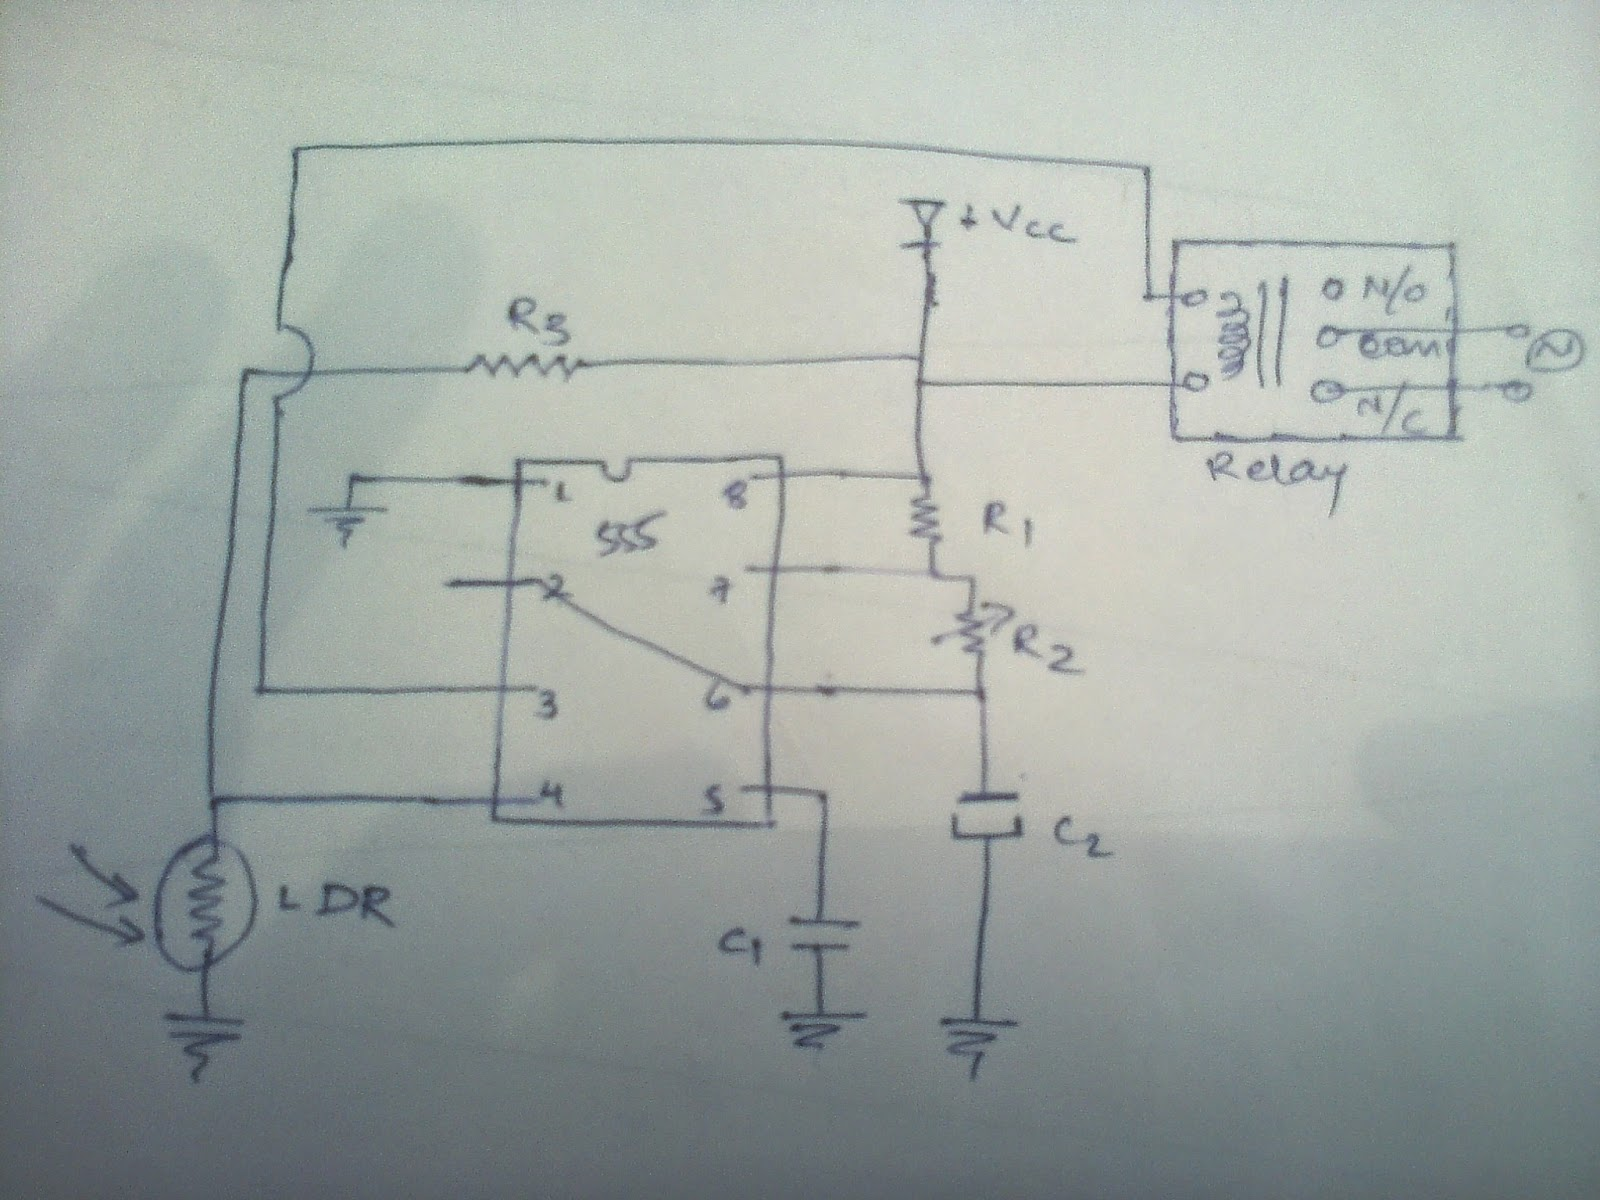 Electronic Projects Automatic Night Lamp Using 555 Timer Ic And Ldr